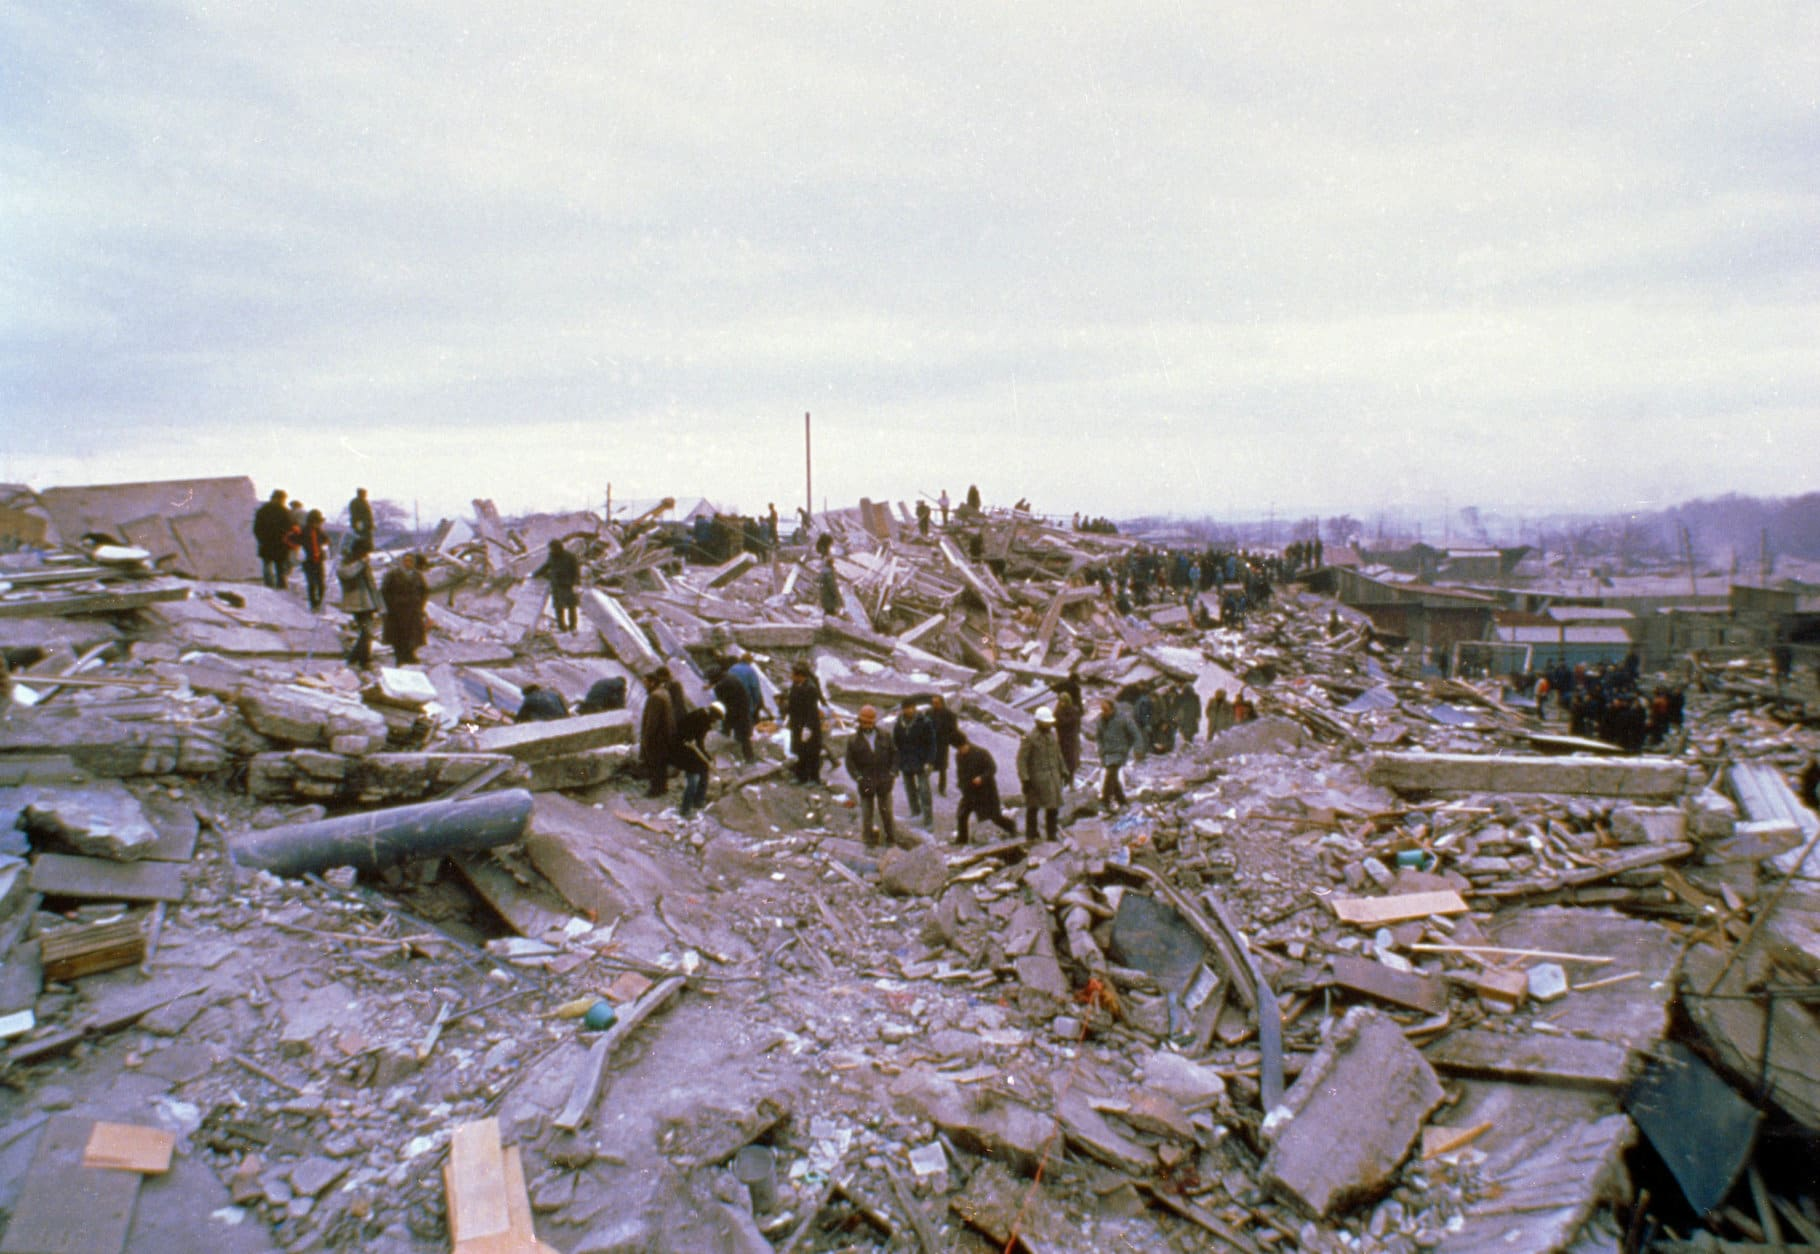 Rescue teams and survivors search for victims in the debris in Leninakan, Soviet Armenia, Dec. 12, 1988, after last week's devastating earthquake.  (AP Photo/Pool)